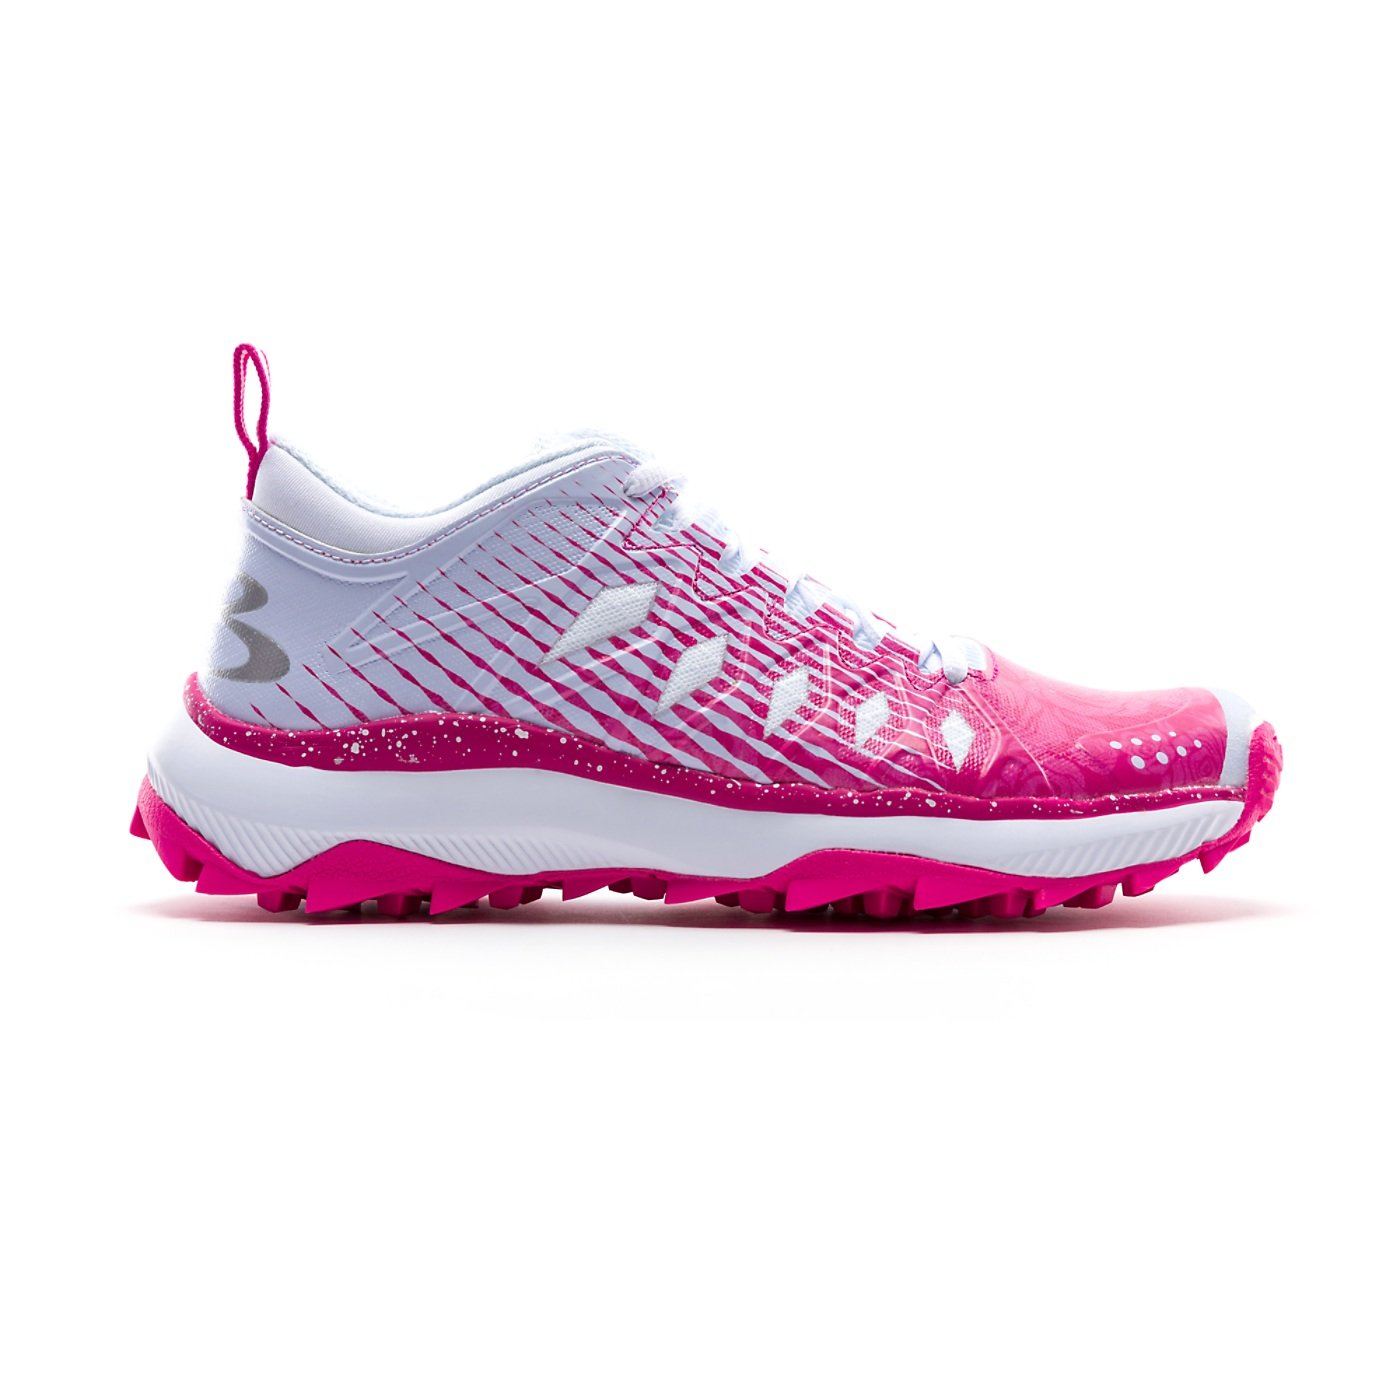 Boombah Women's Squadron Turf Shoes - 14 Color Options - Multiple Sizes B07CRRT1RQ 6|White/Pink